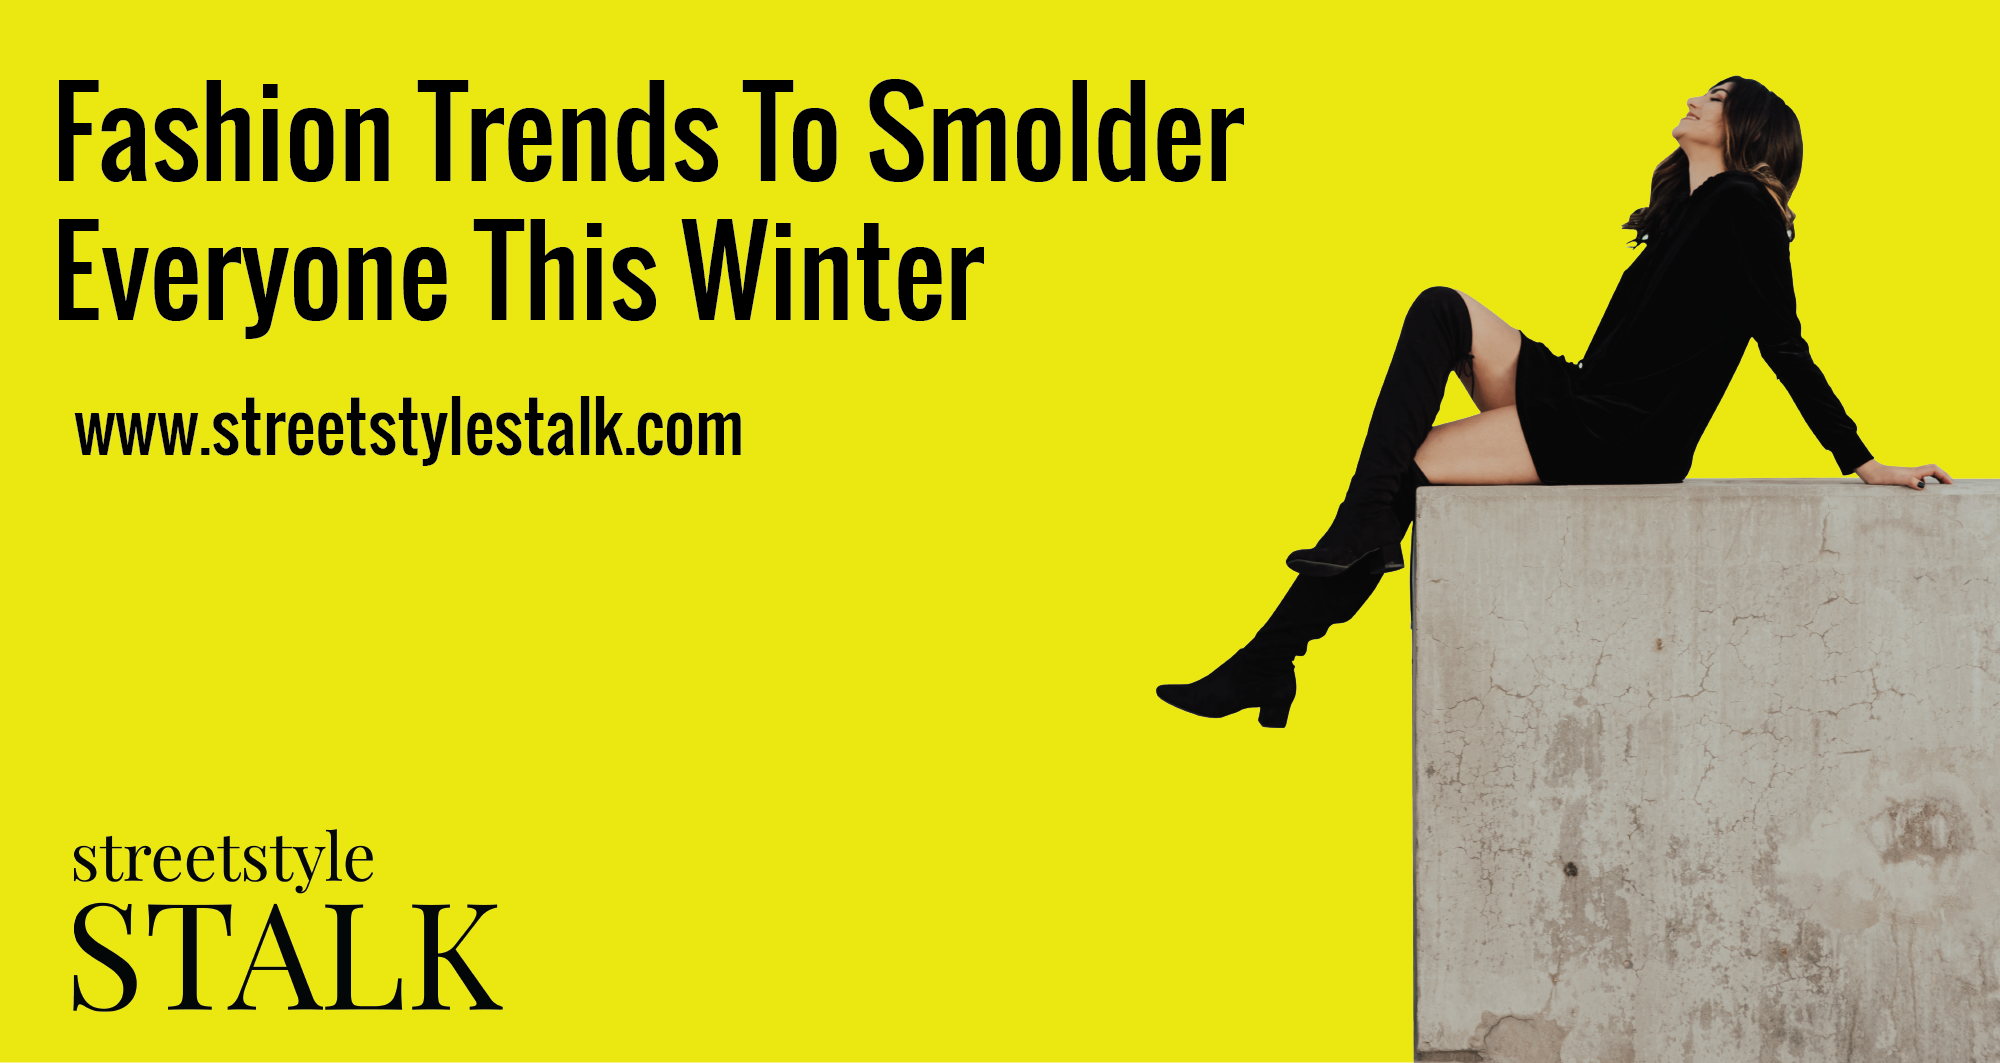 Fashion Trends To Smolder Everyone This Winter